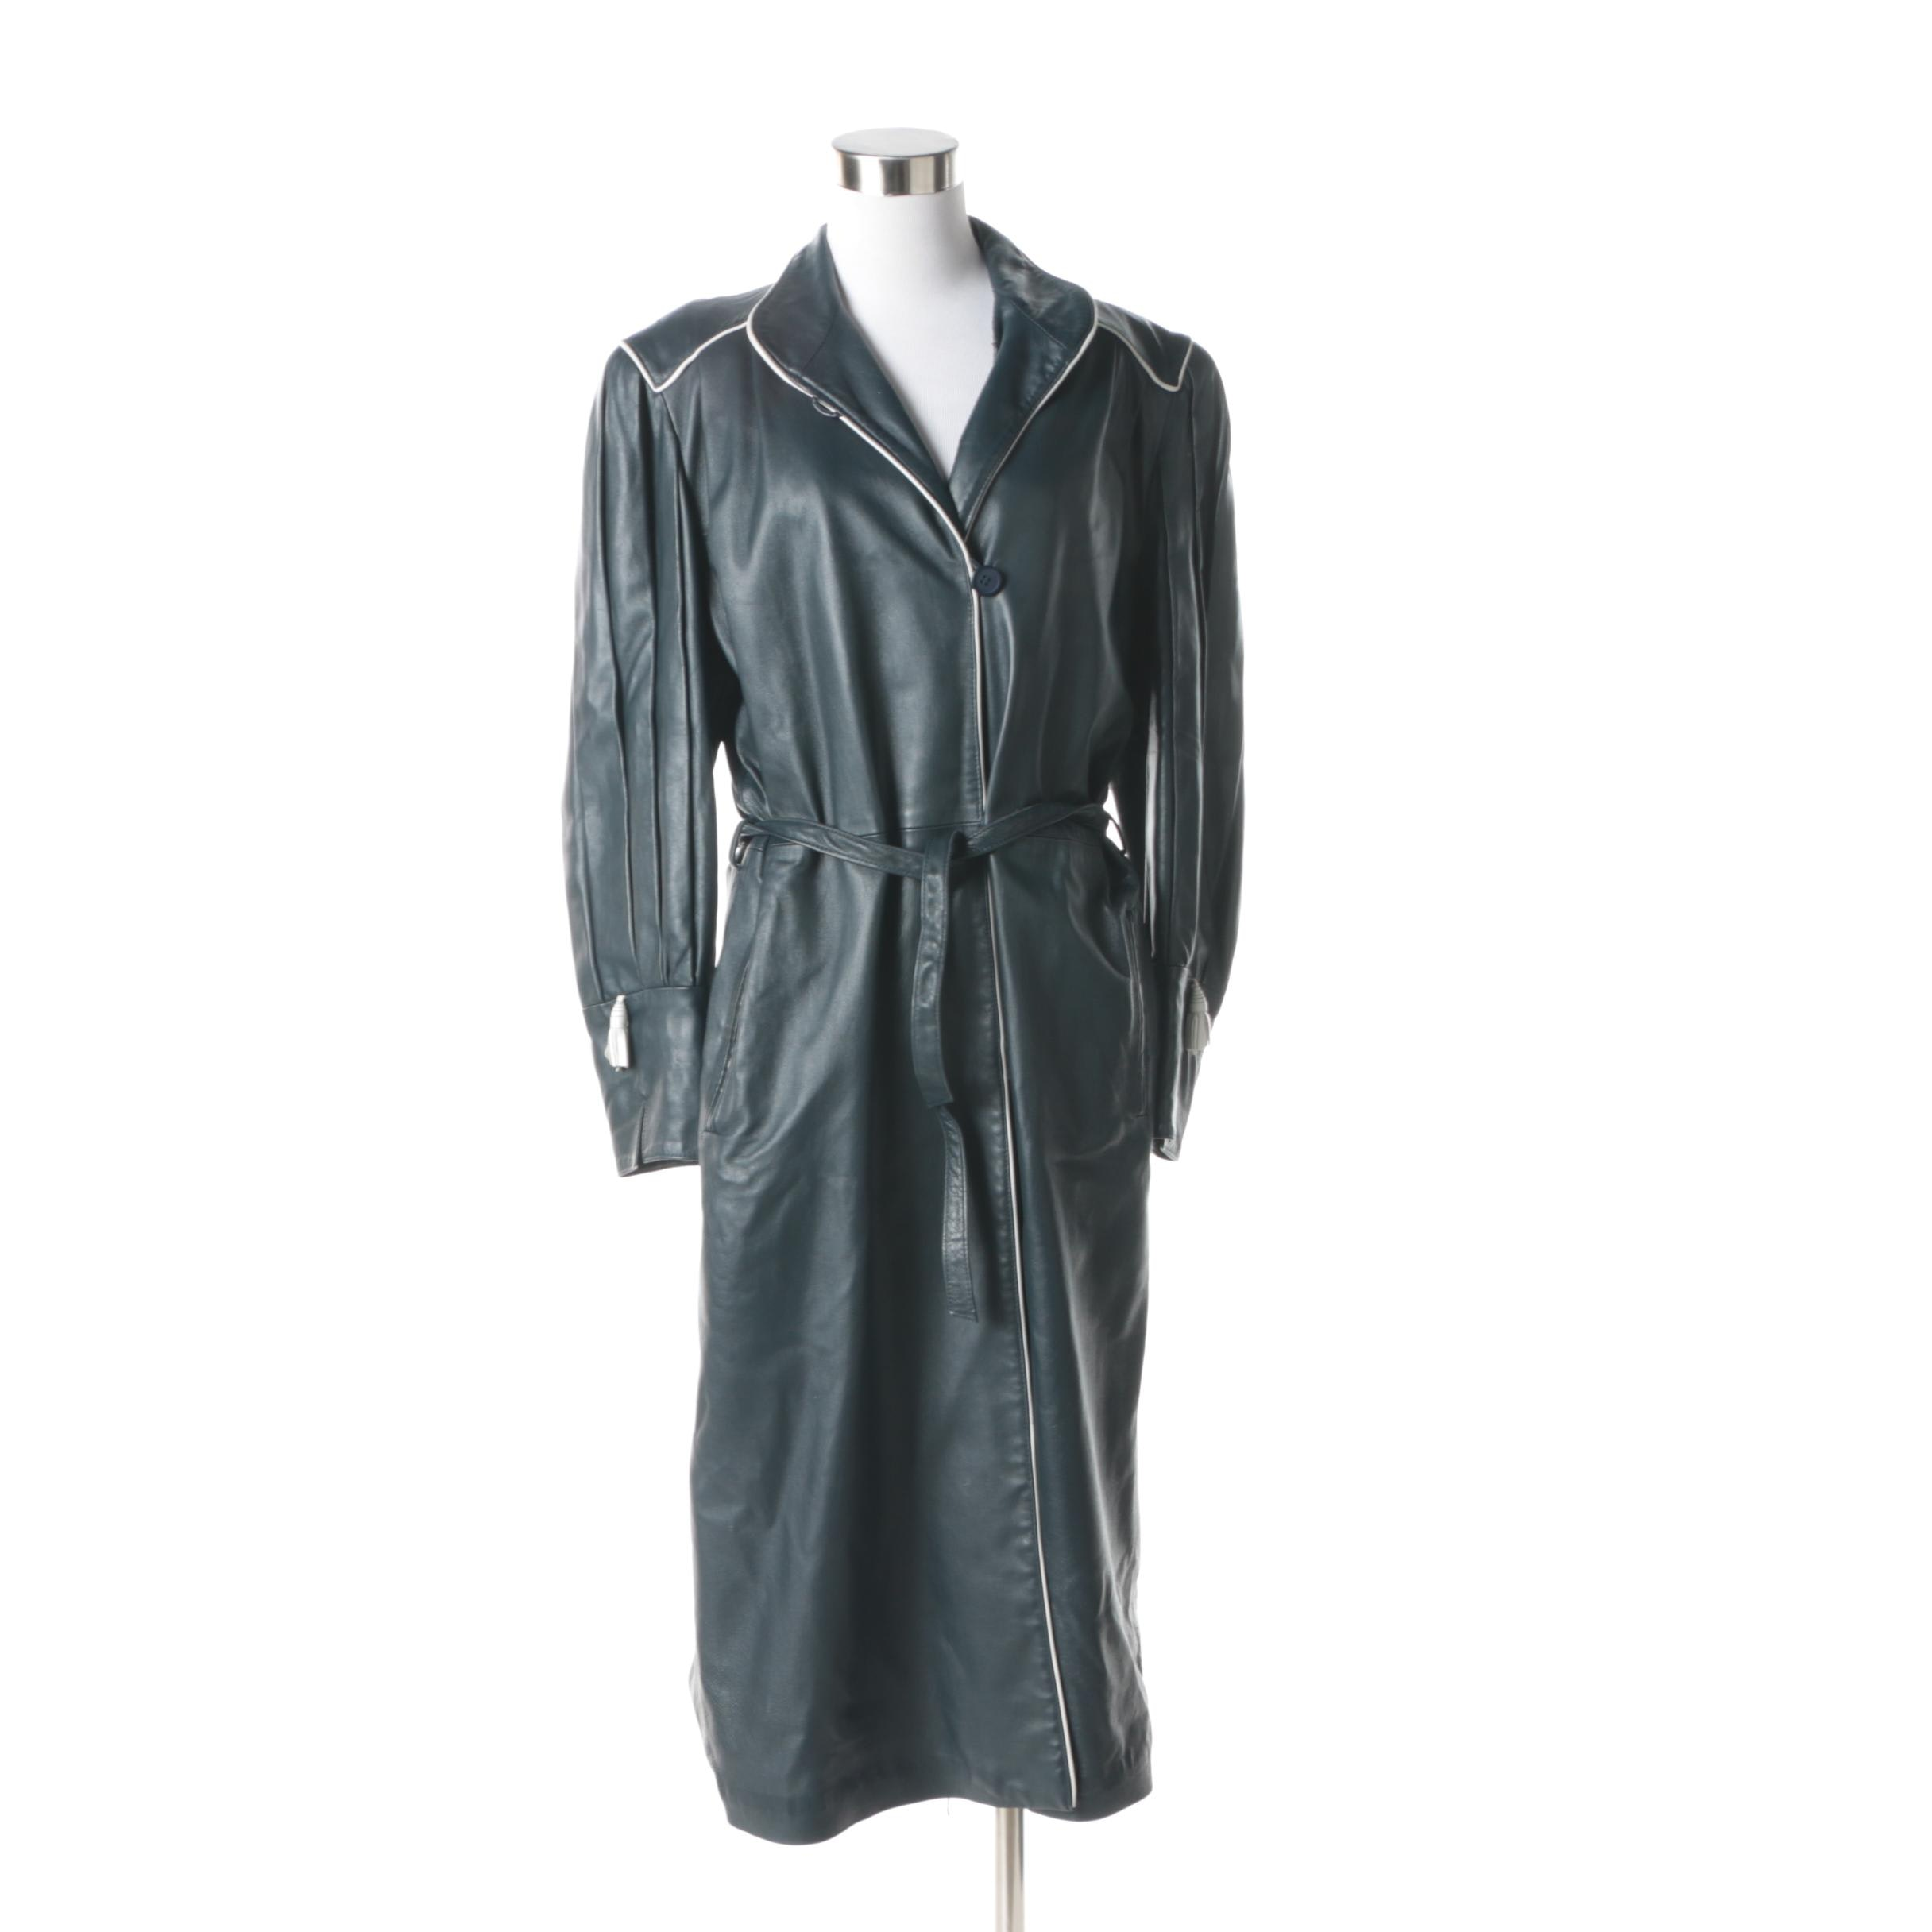 1980s Vintage Full-Length Navy Blue Leather Coat with White Trim